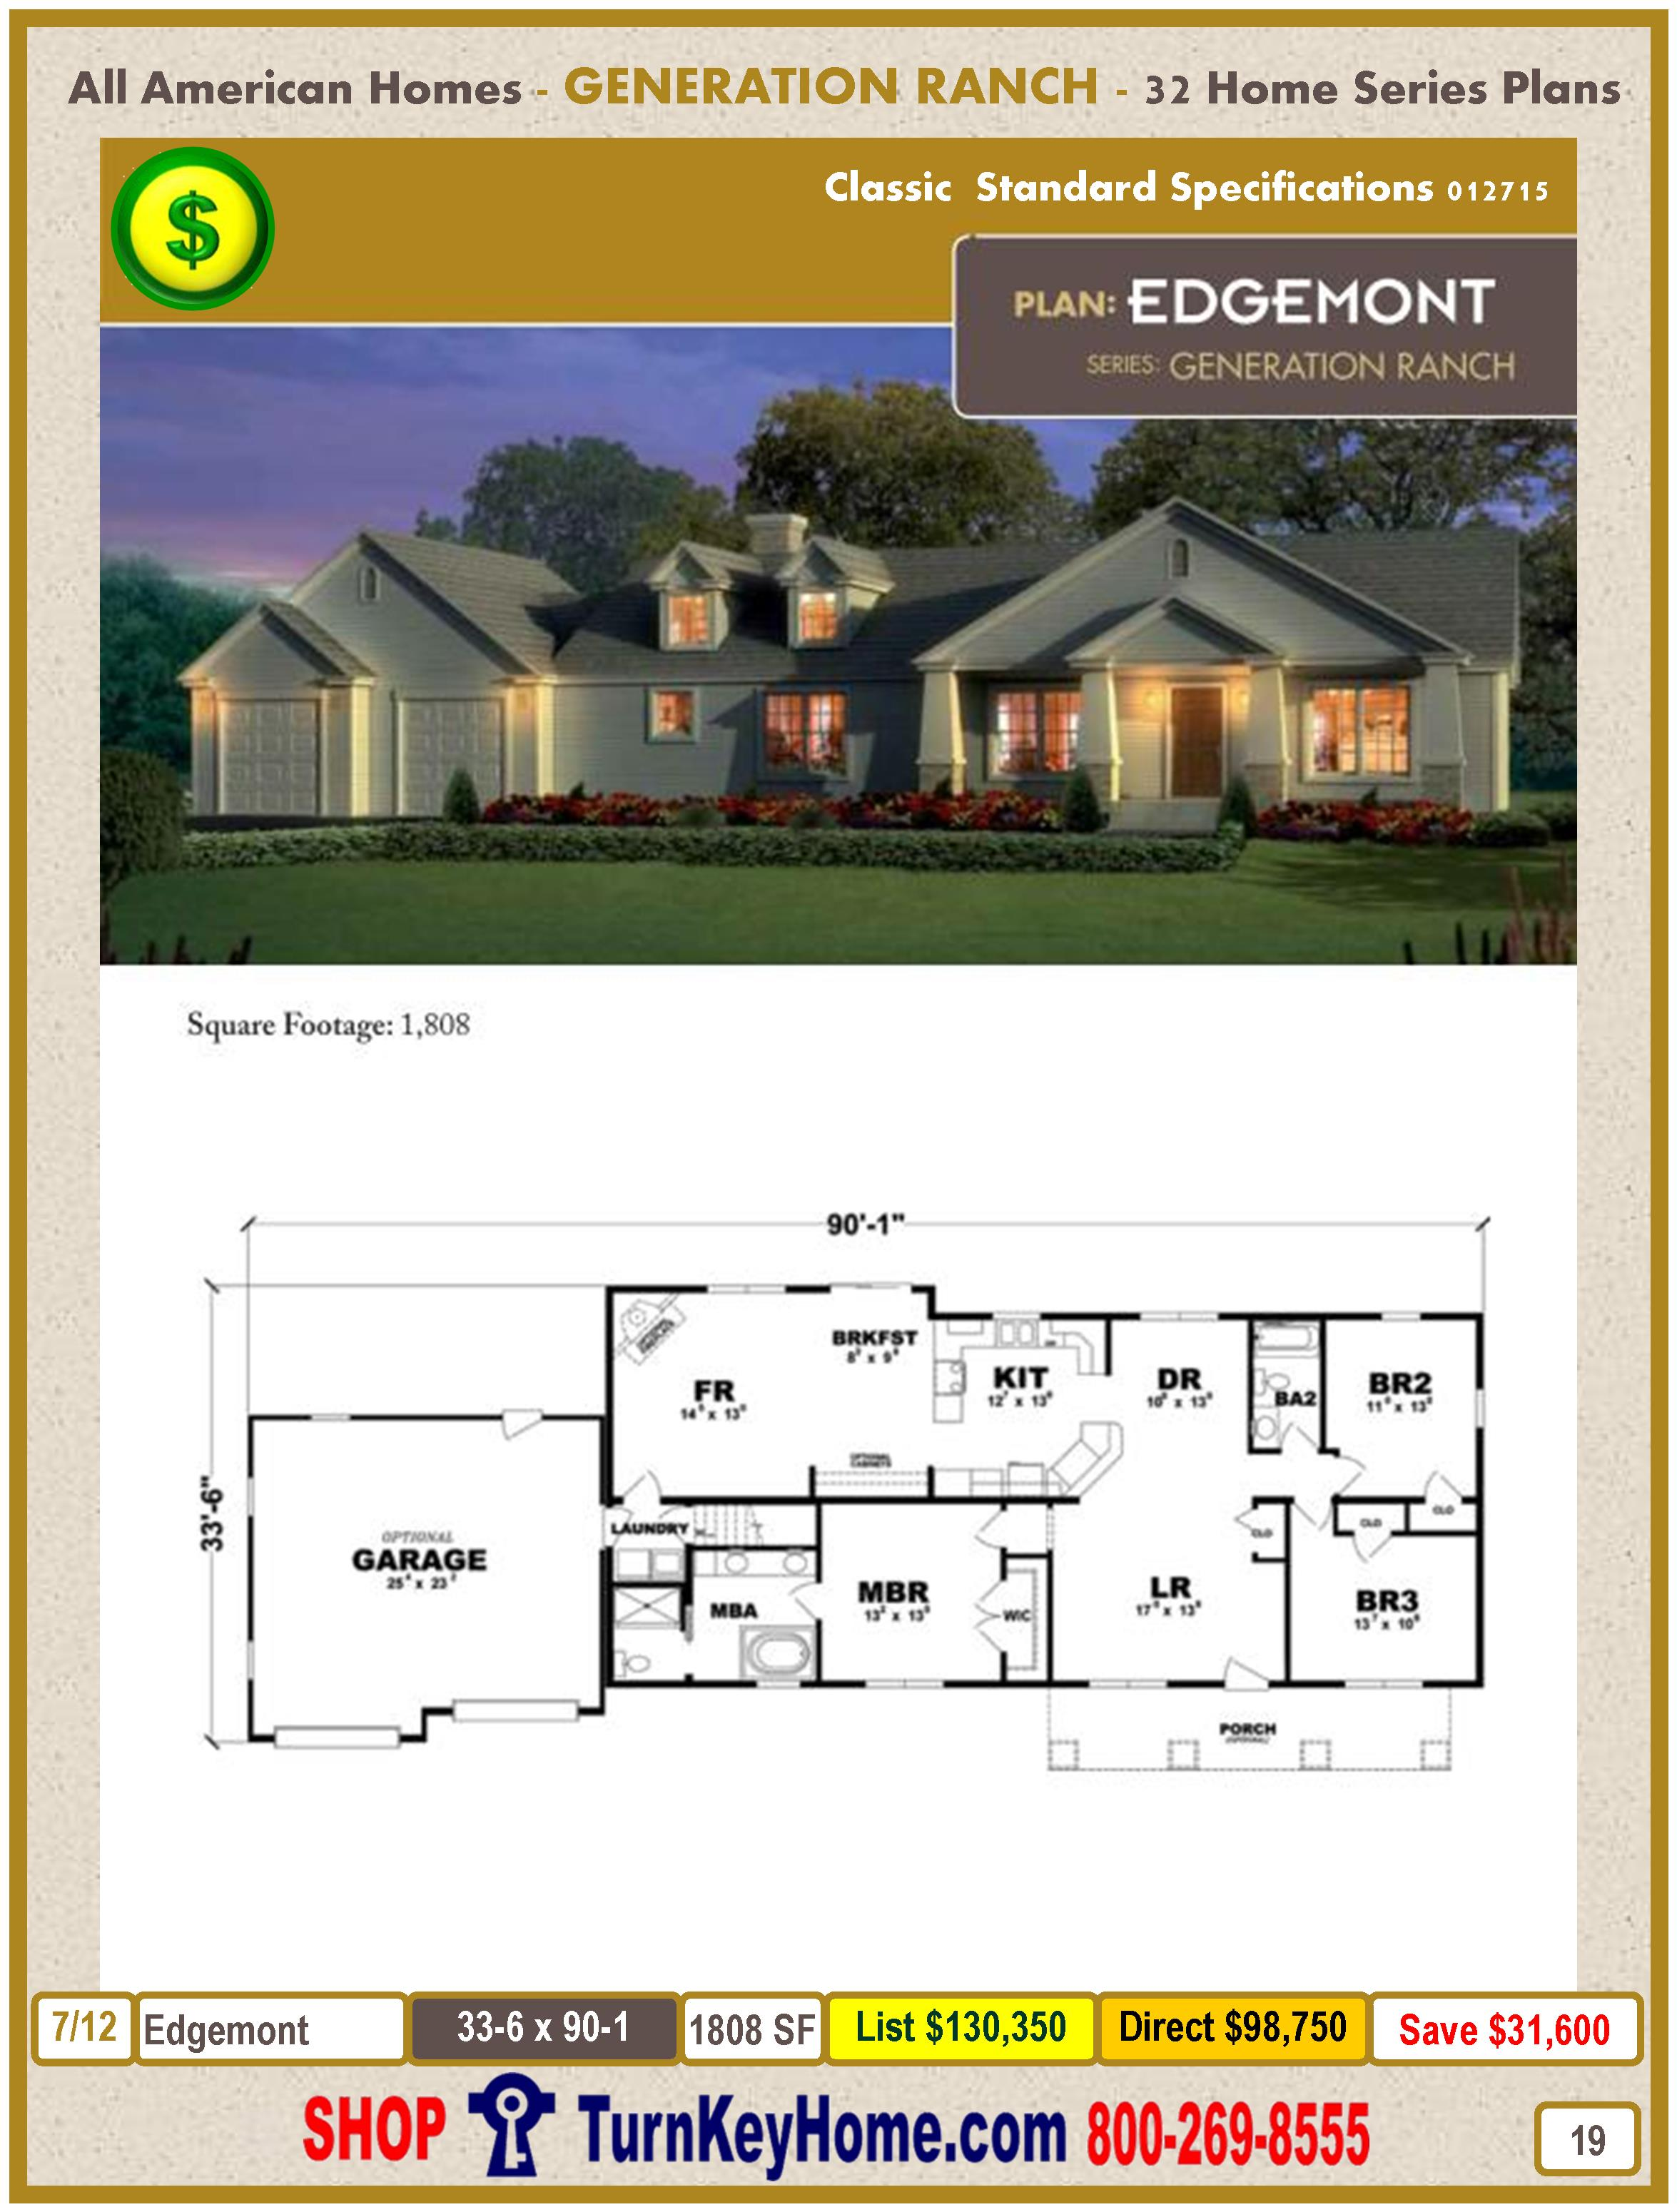 Modular.All.American.Homes.Generation.Ranch.Home.Series.Catalog.Page.19.Edgemont.Direct.Price.021415